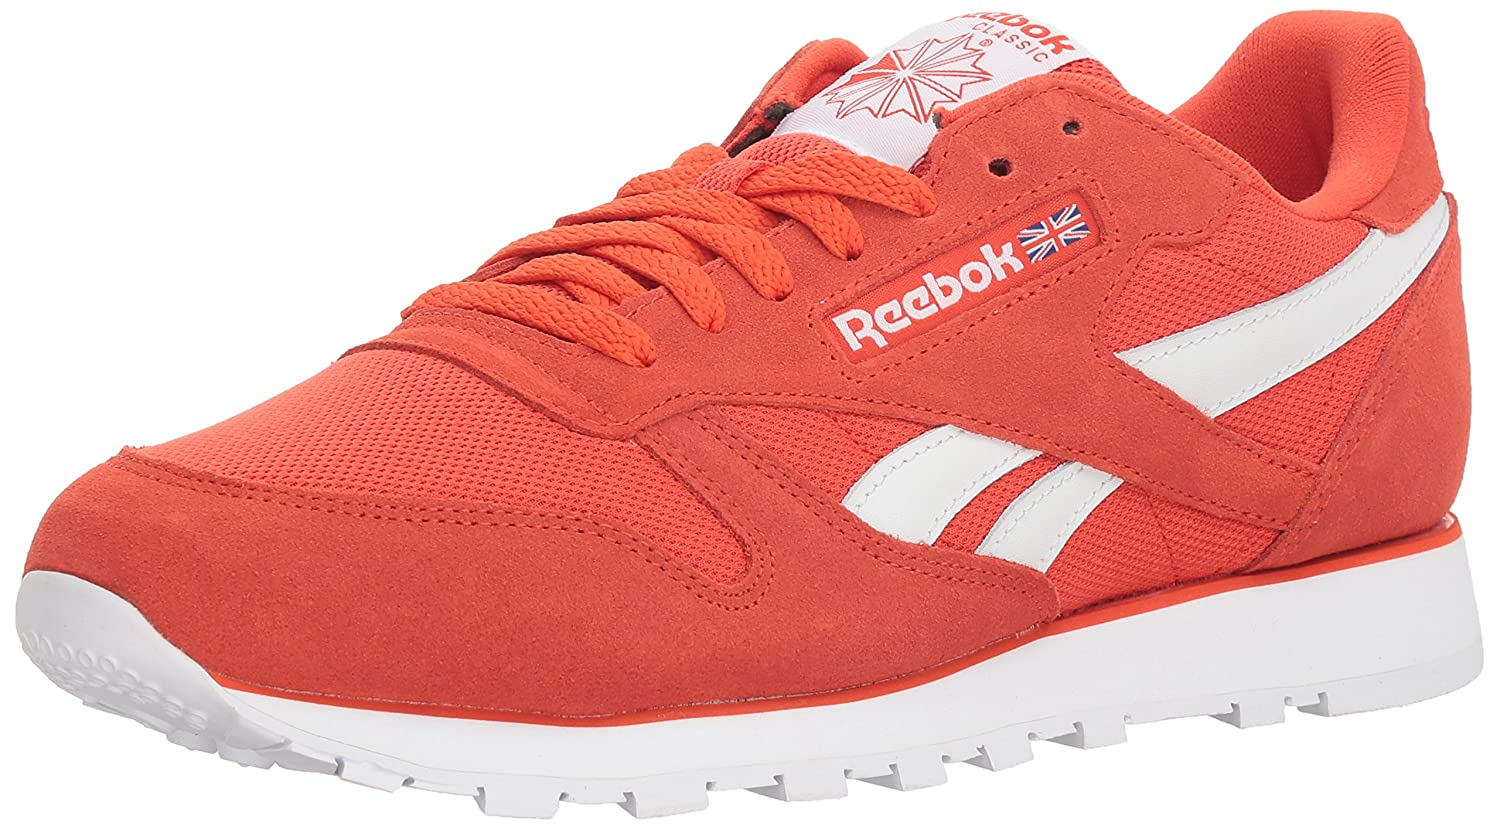 Reebok Men's Classic Leather Sneaker 14 M US|Estl-carotene/White